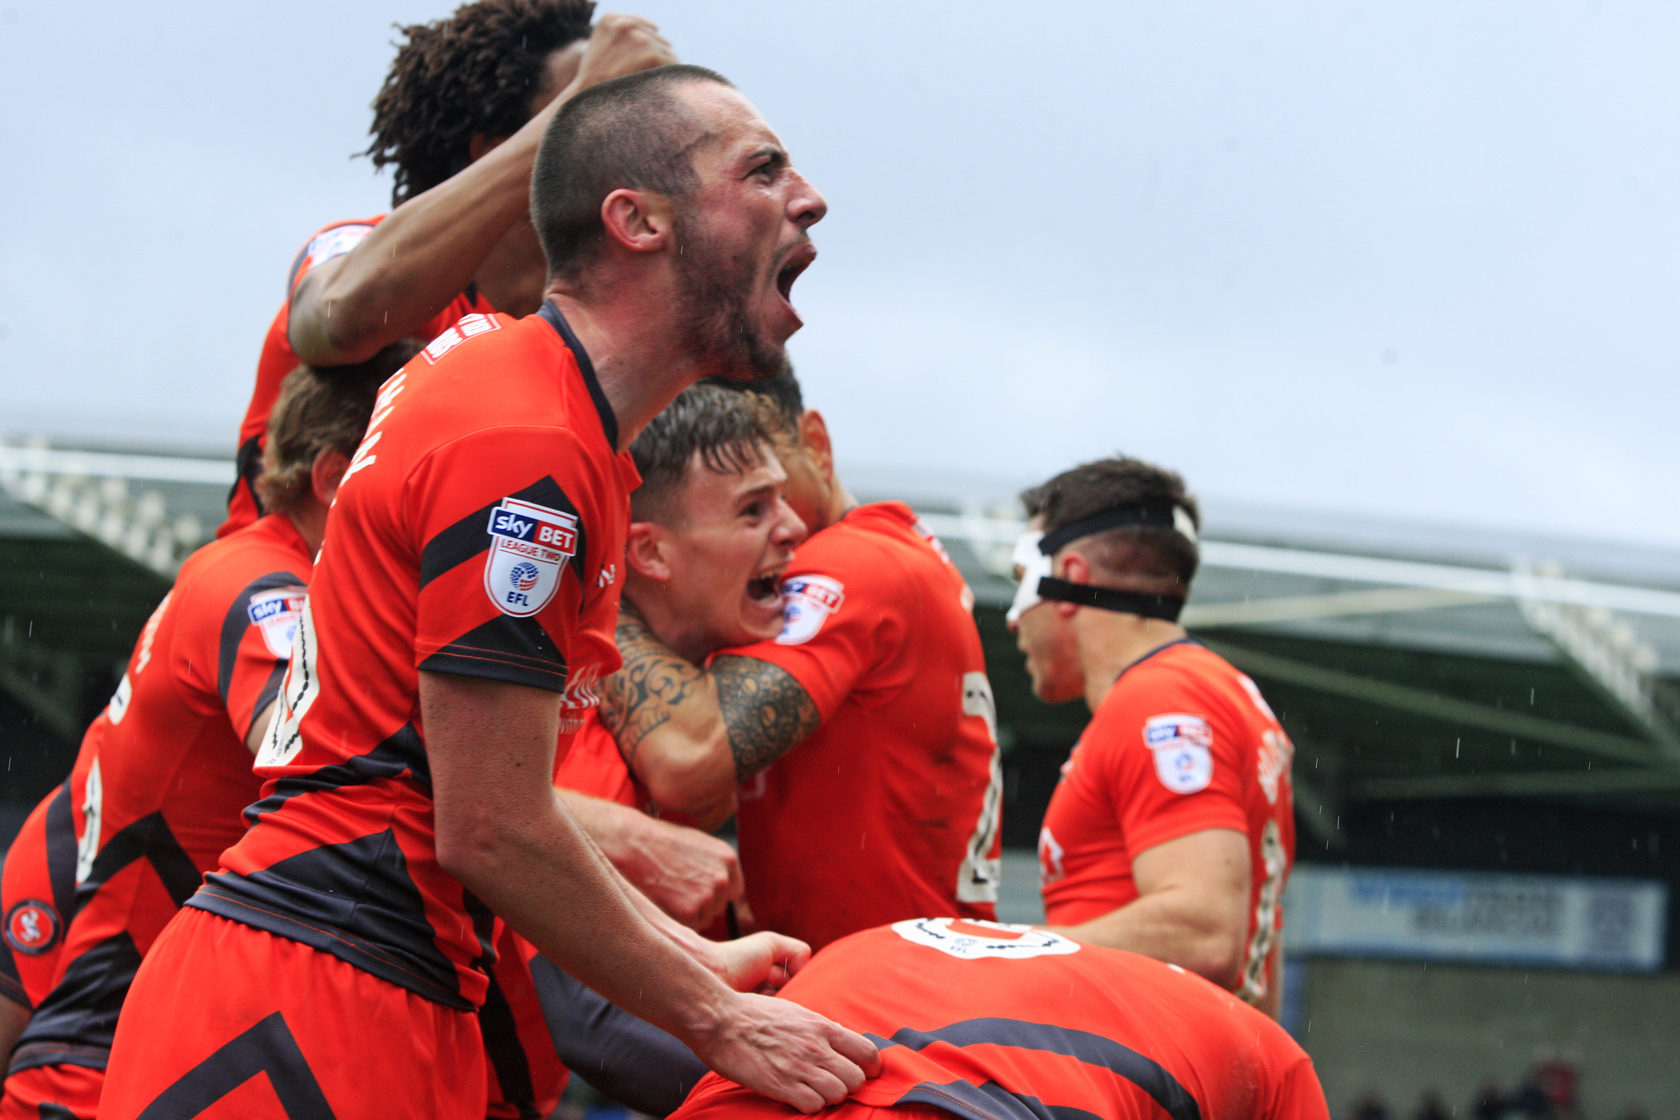 Wycombe play Blackpool on August 4